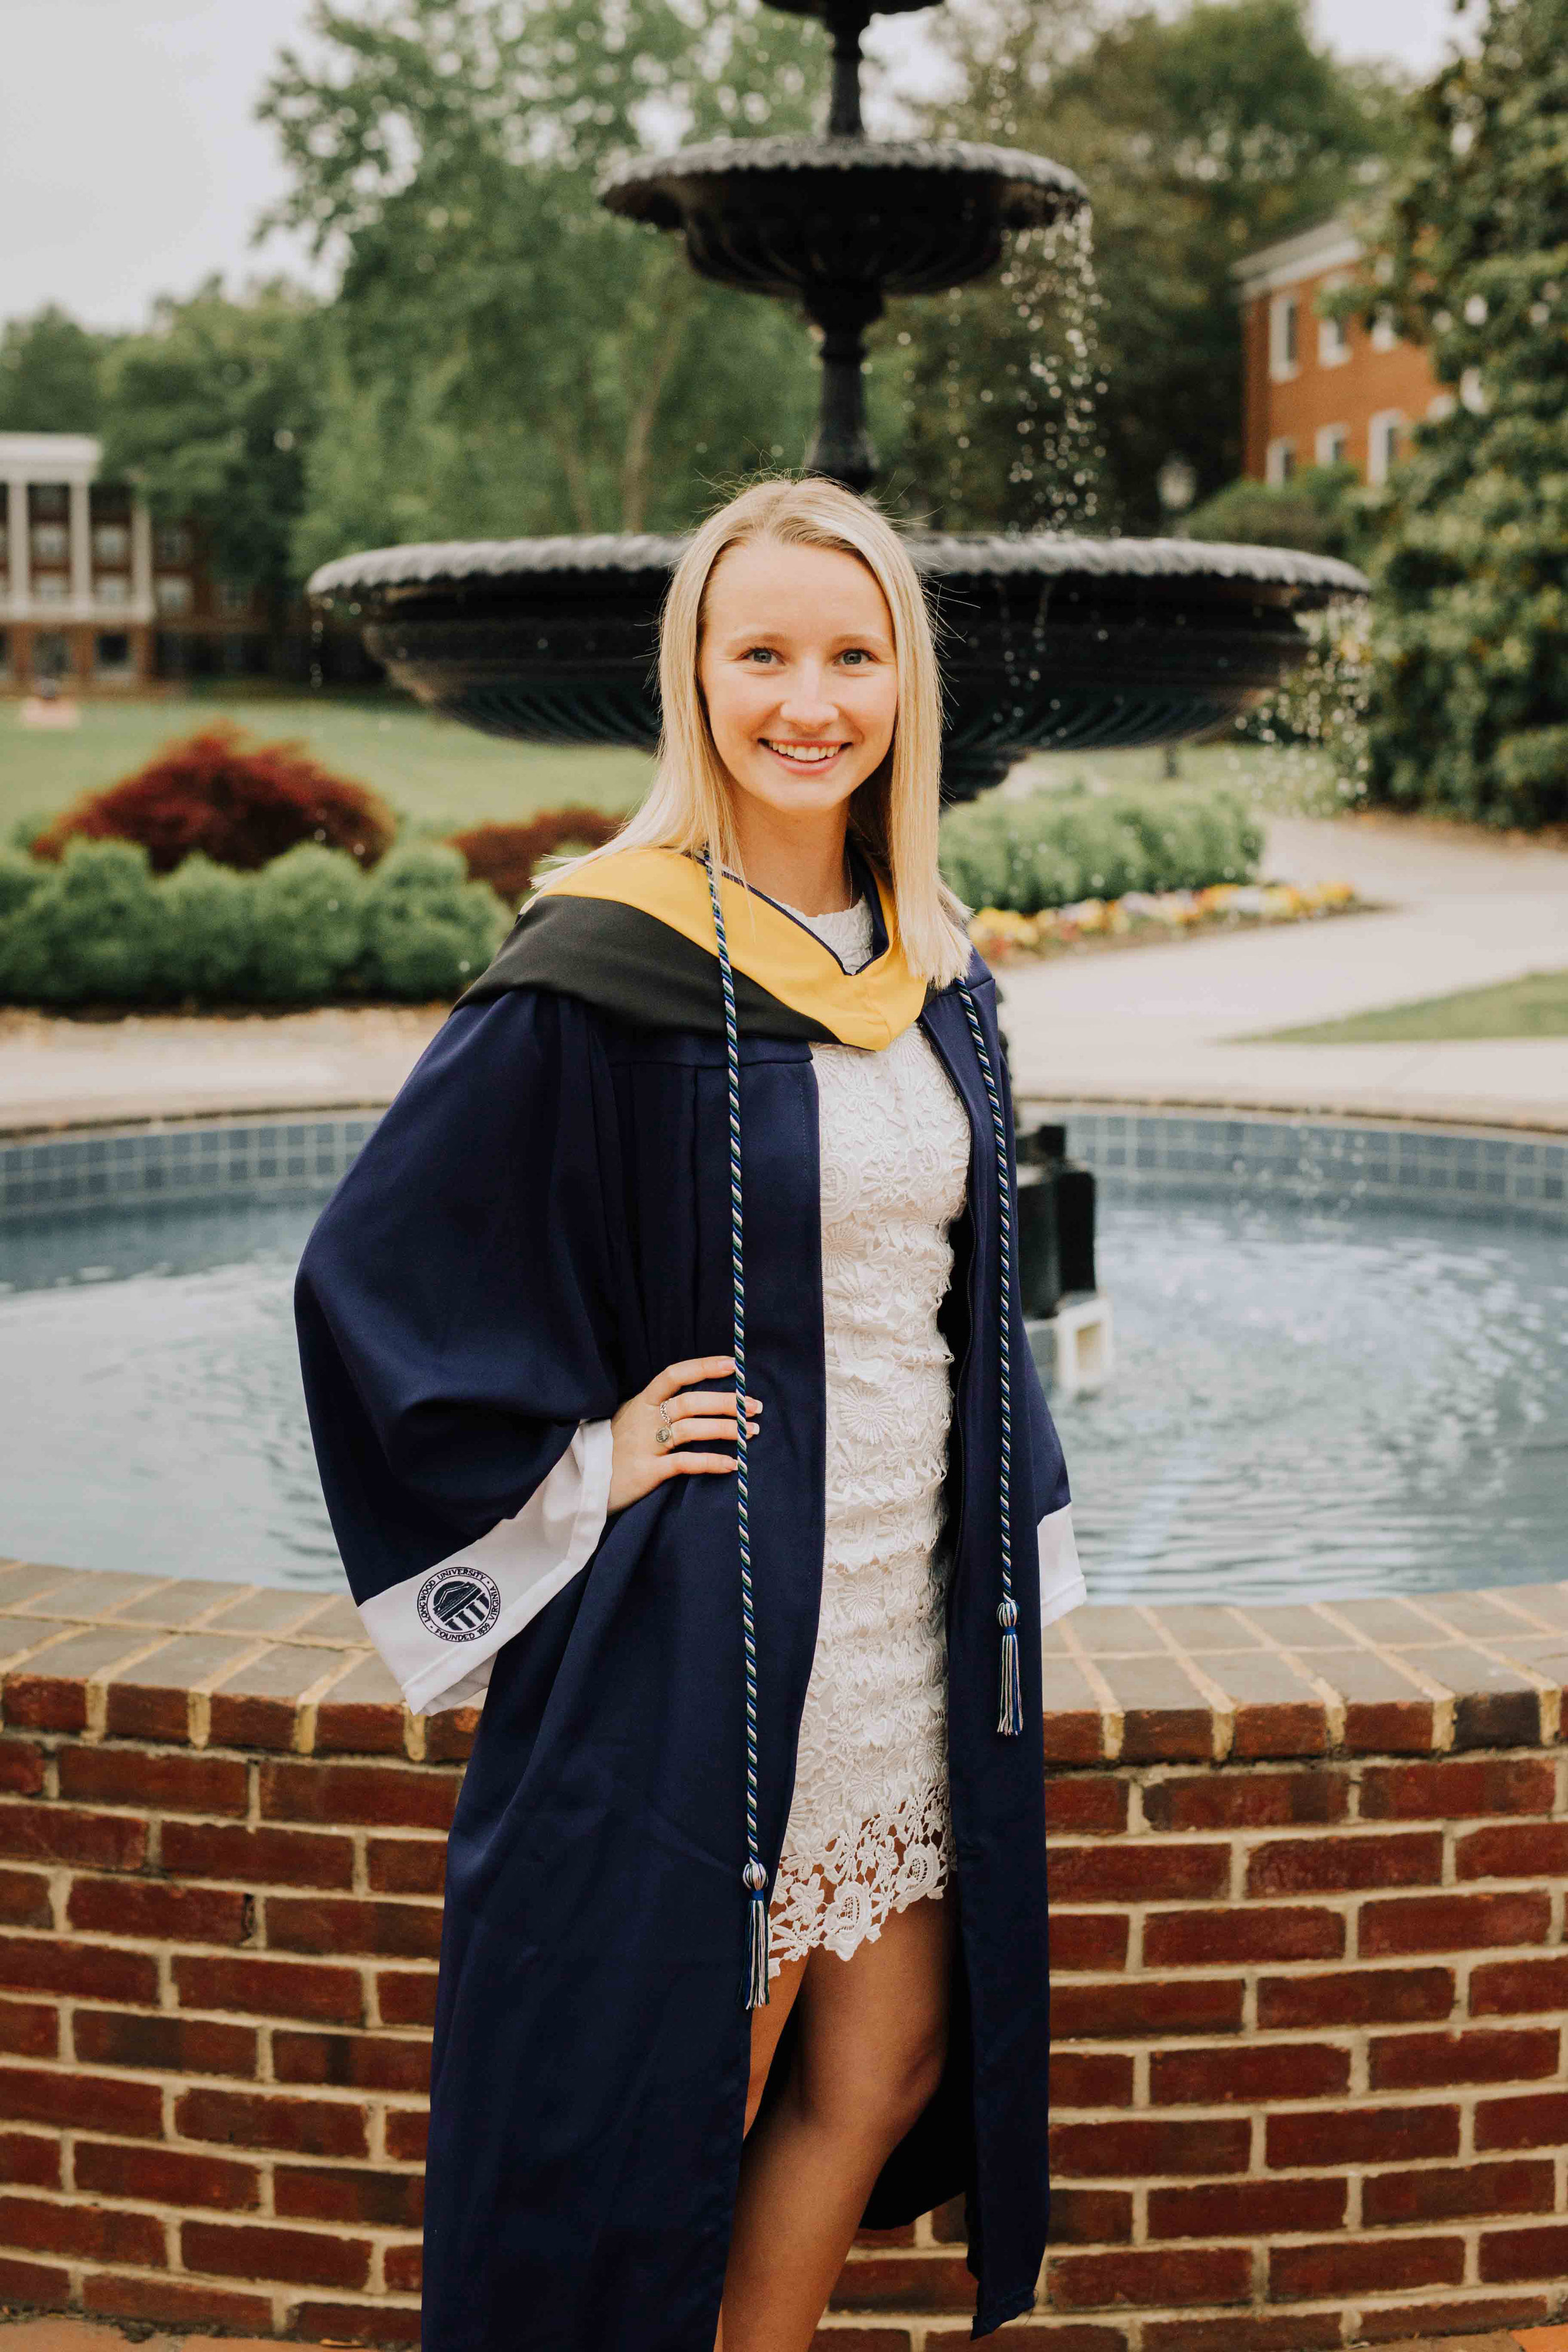 Longwood-Senior-Graduate-Jacqueline-Waters-Photography-Farmville-Virginia- (178).jpg